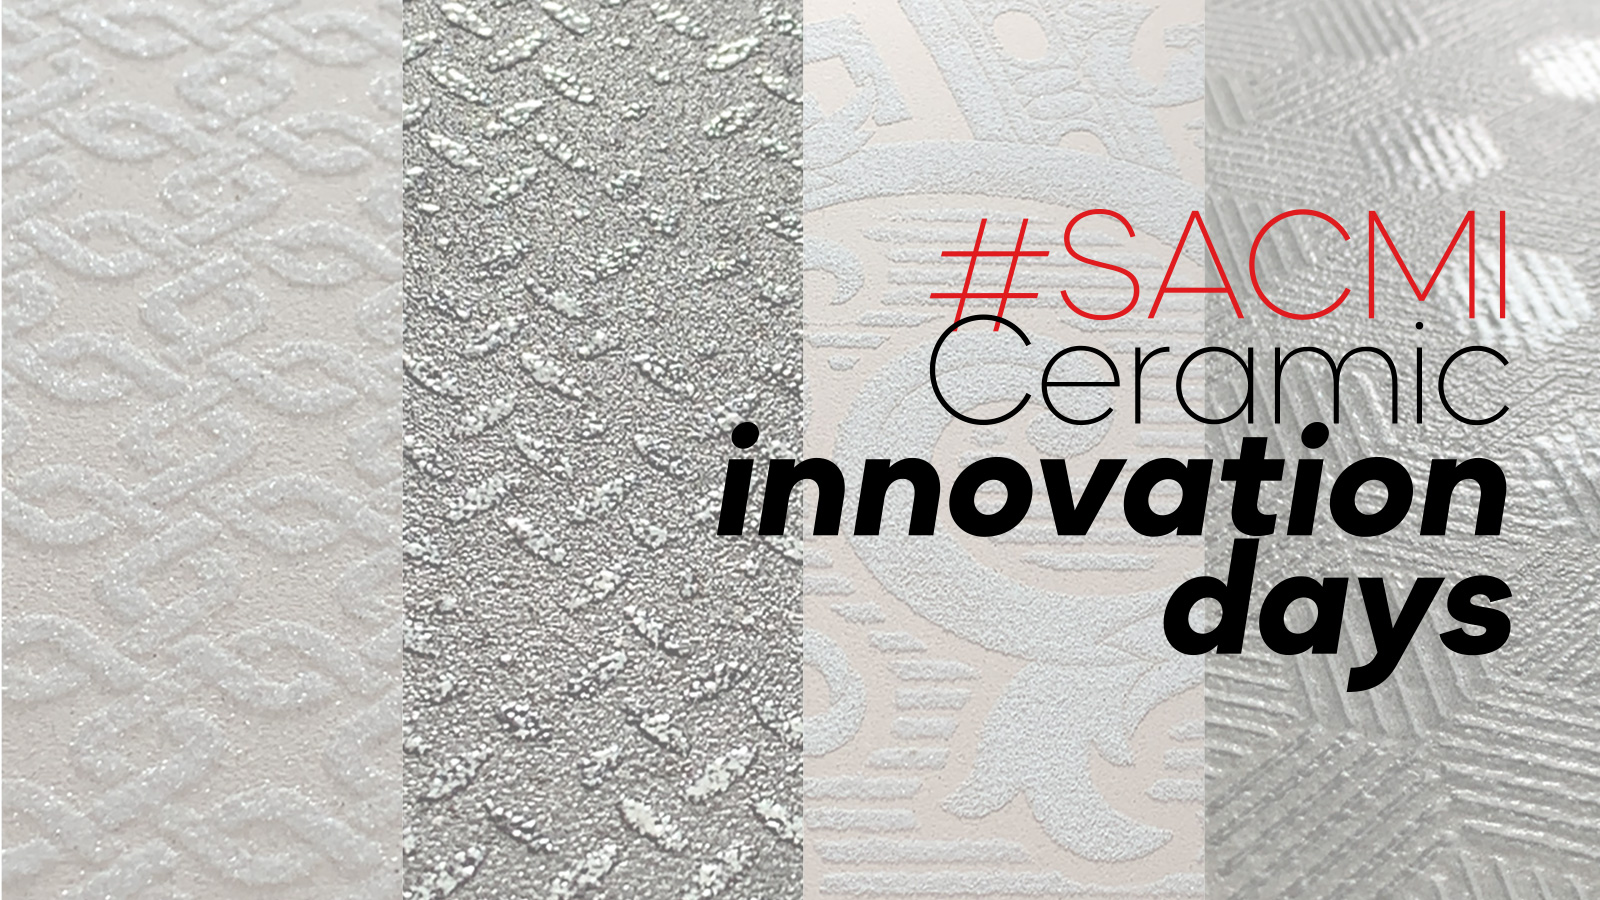 WEBINAR #SACMICeramicInnovationDays, Continua+, esmaltado y decoración digital